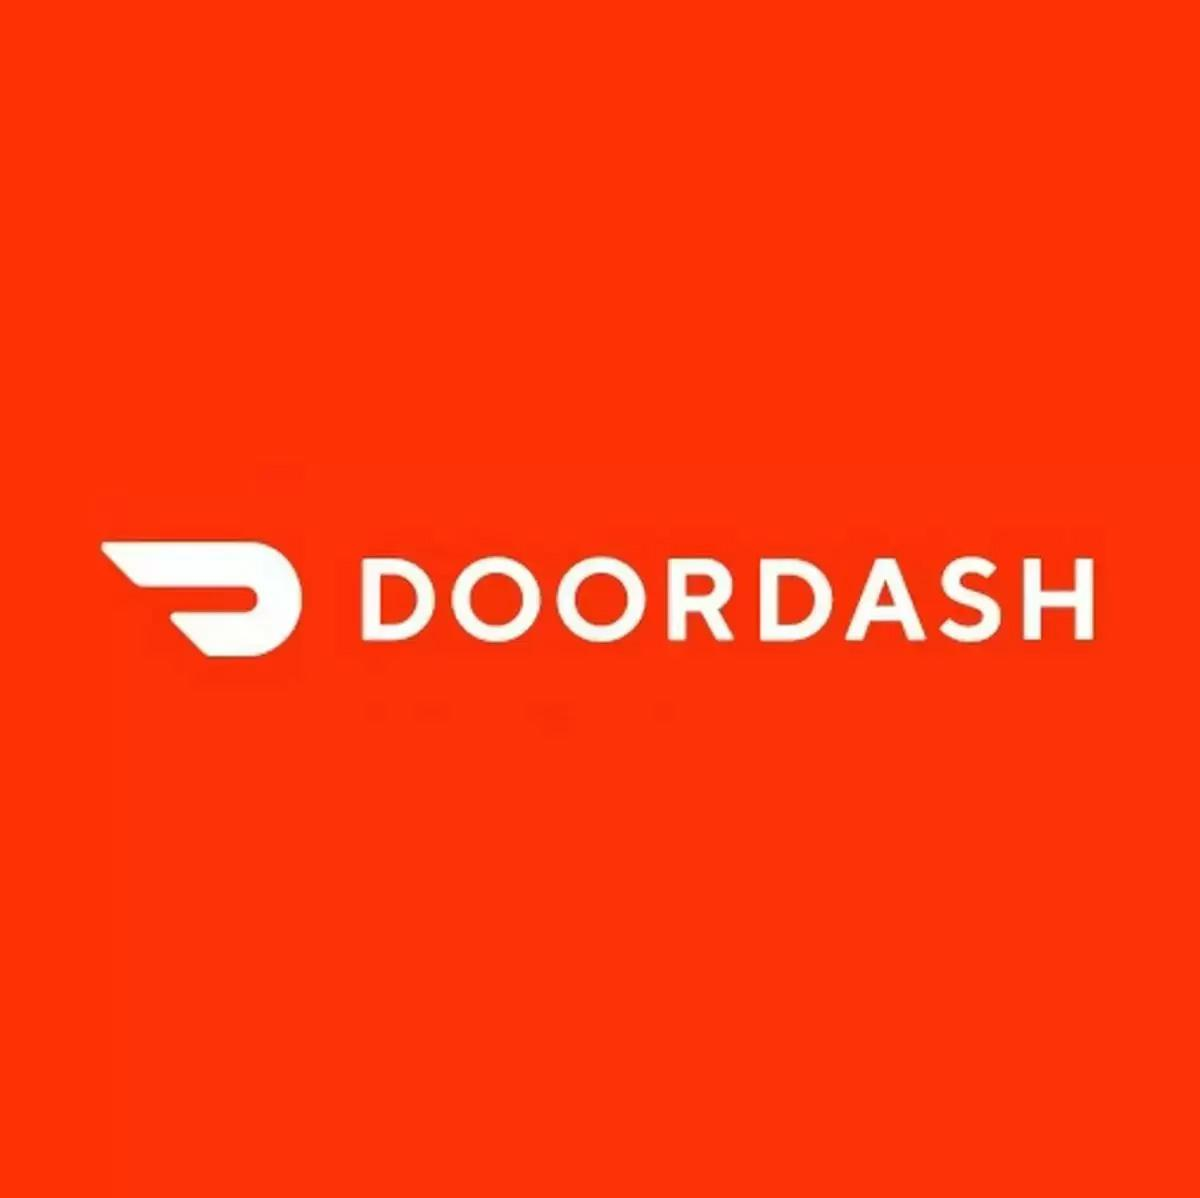 DoorDash Food Delivery Off If You Pickup Instead